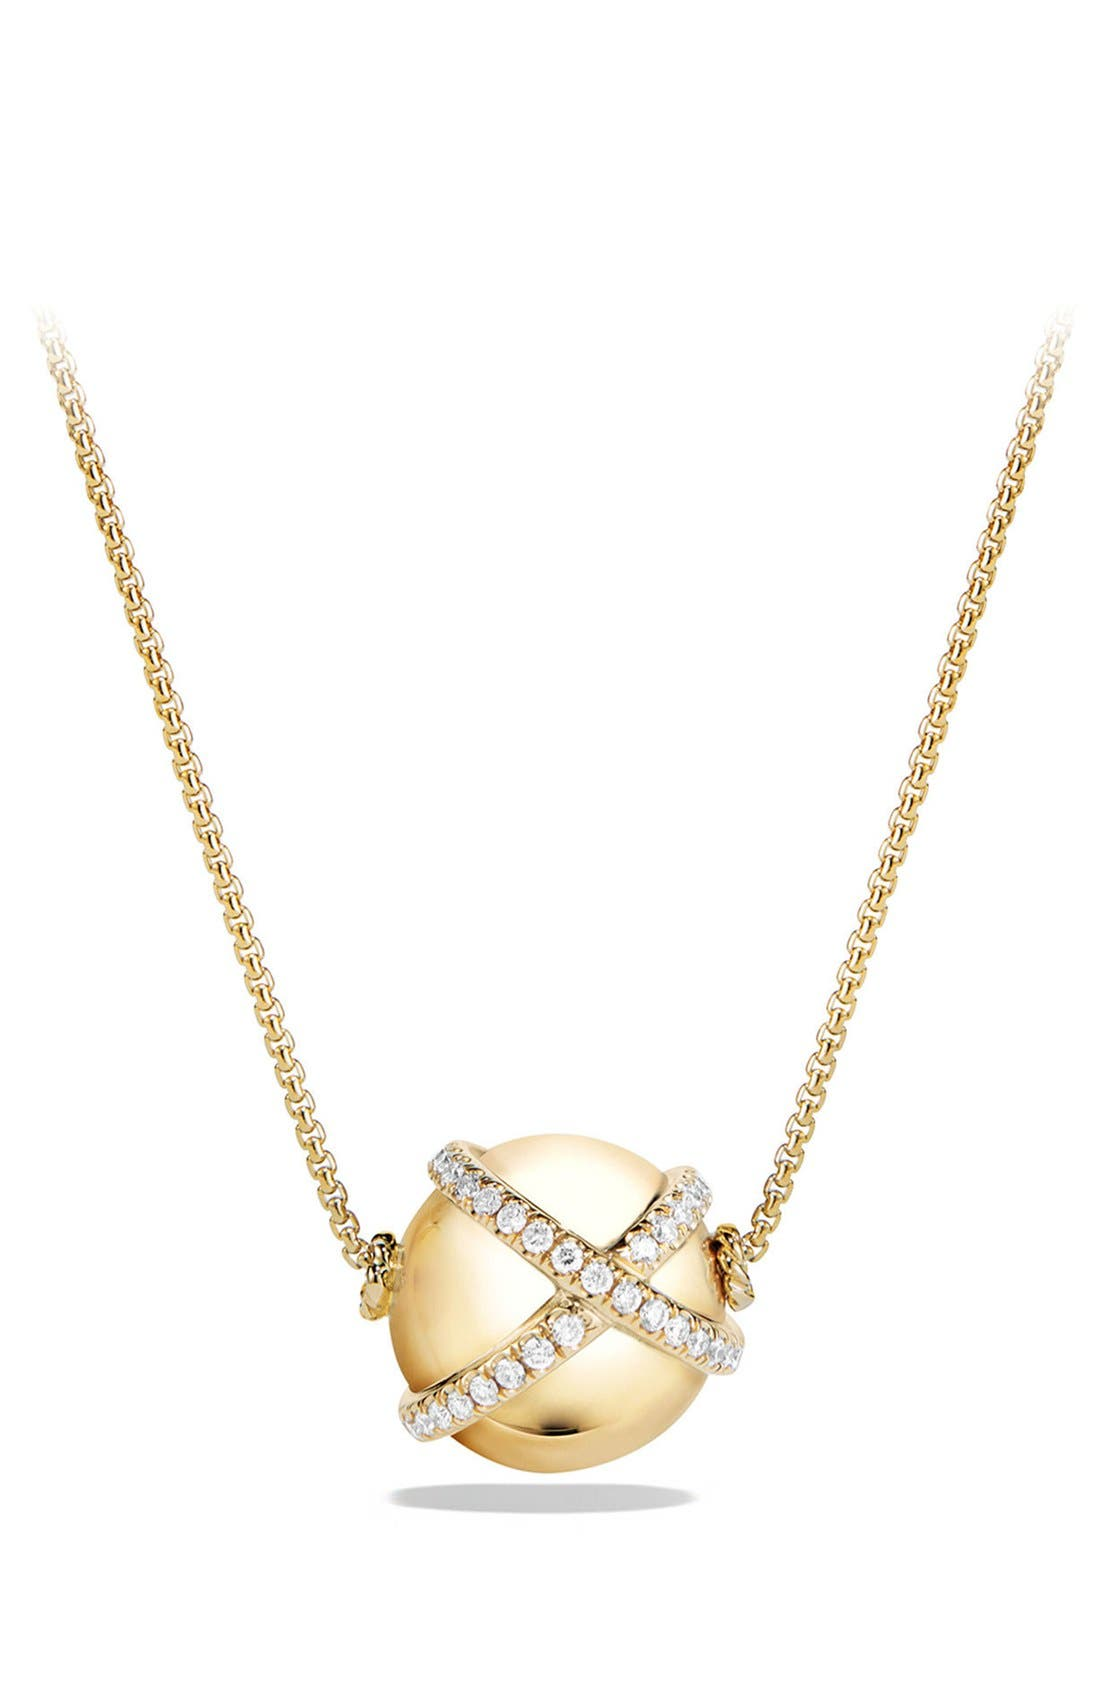 Main Image - David Yurman 'Solari' Wrap Pendant Necklace with Pavé Diamonds in 18k Gold